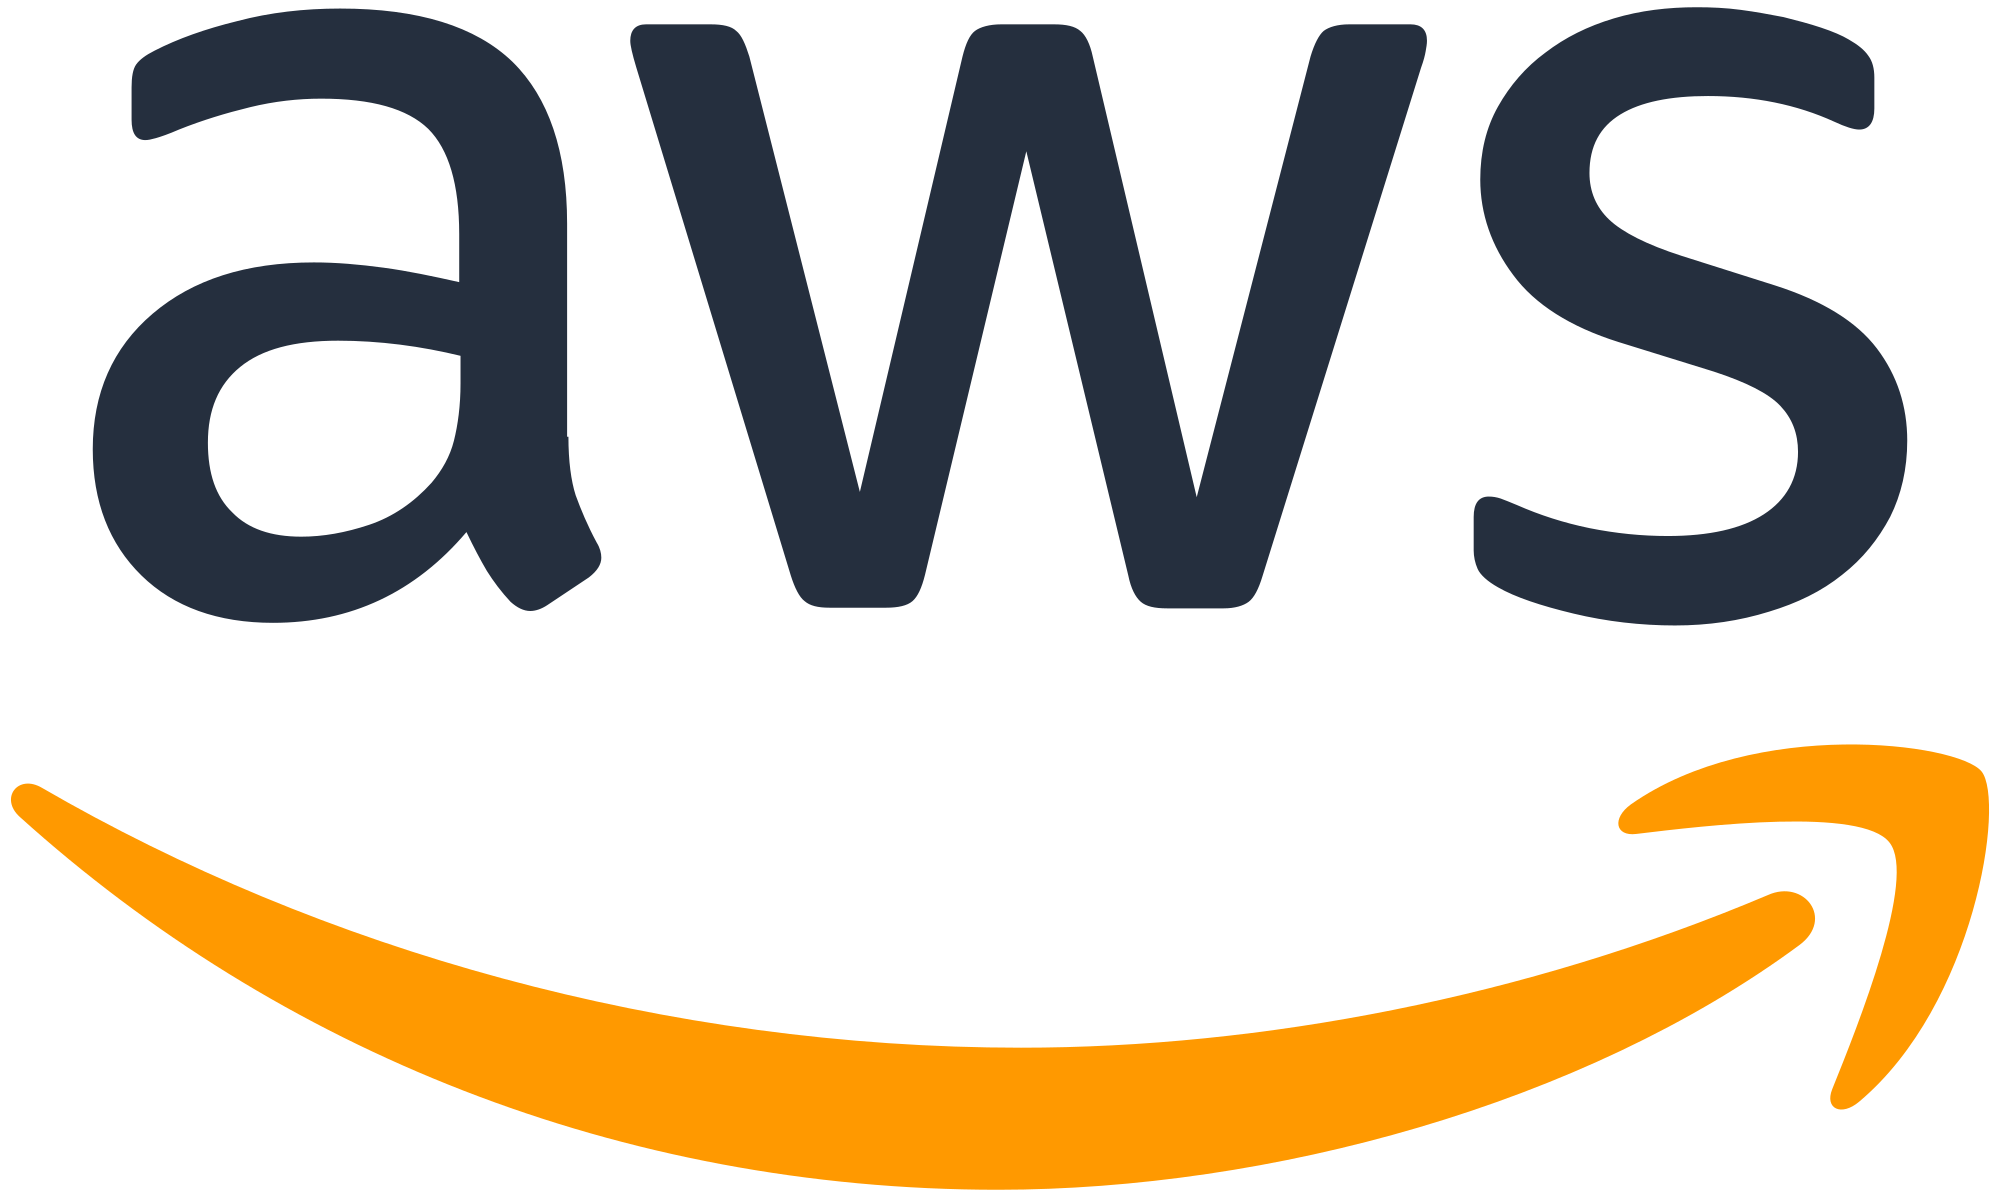 Amazon About to Add Ethereum to Their Blockchain Service